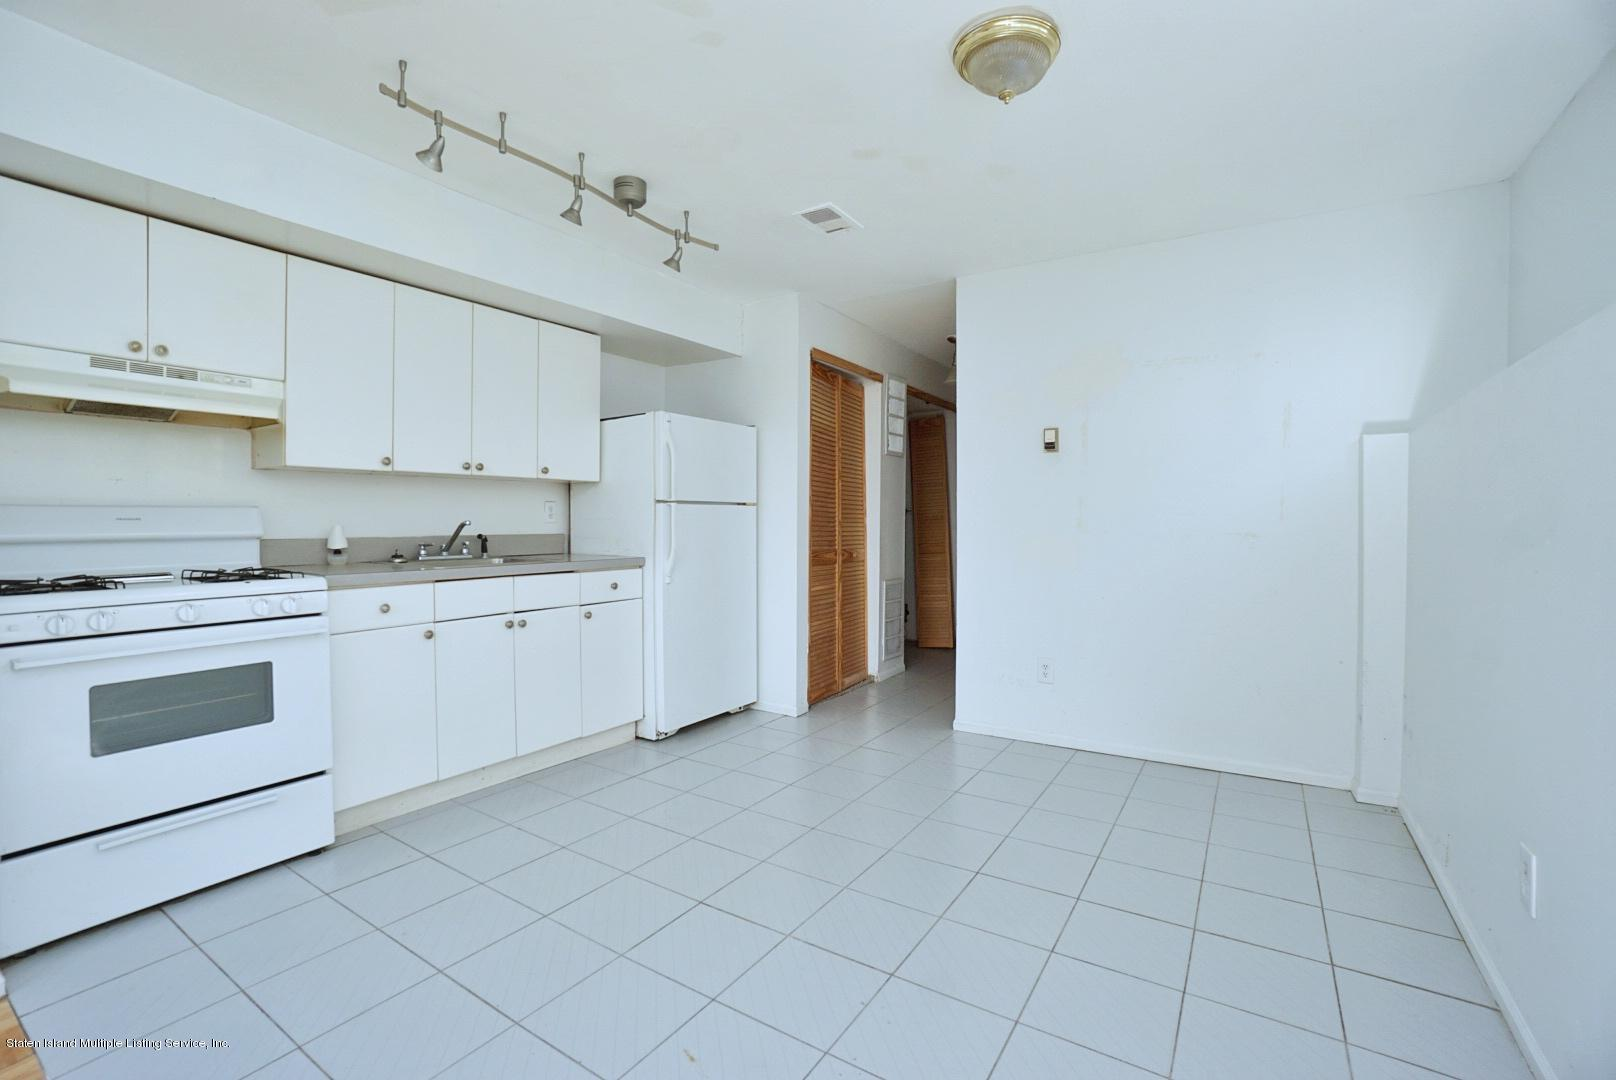 Two Family - Attached 71 Woodcutter Lane  Staten Island, NY 10306, MLS-1136417-27